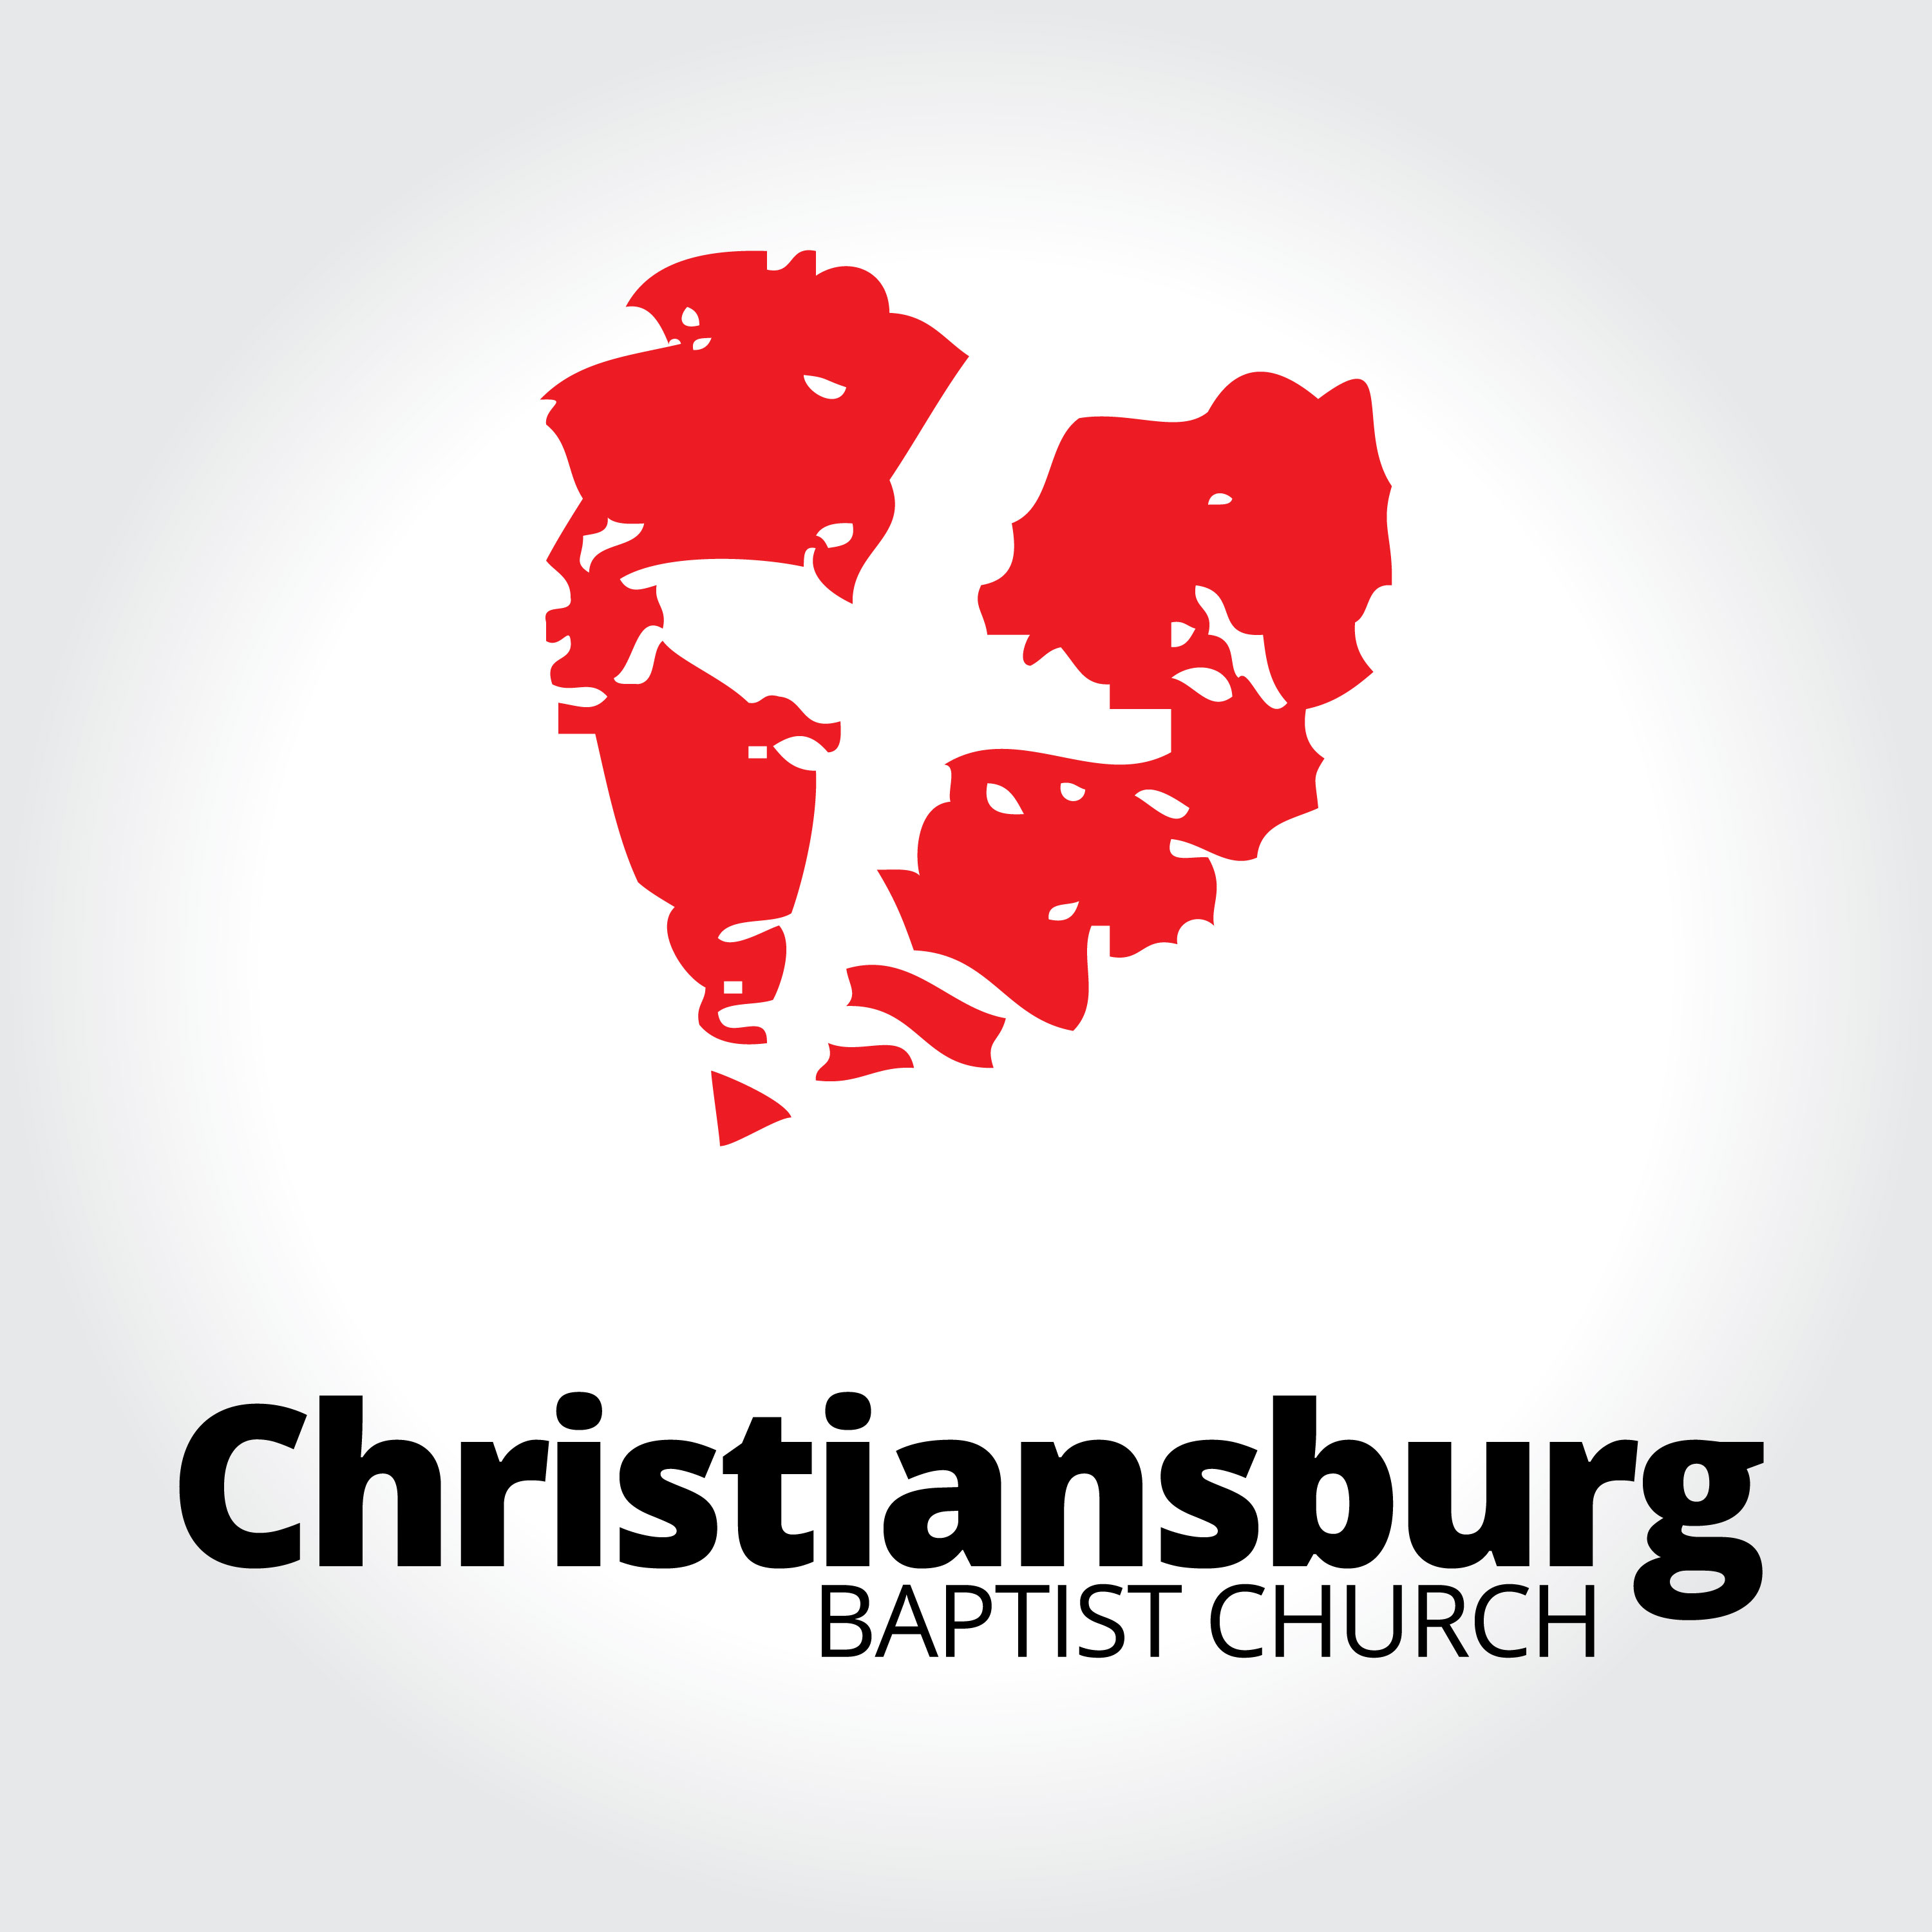 Christiansburg Baptist Church